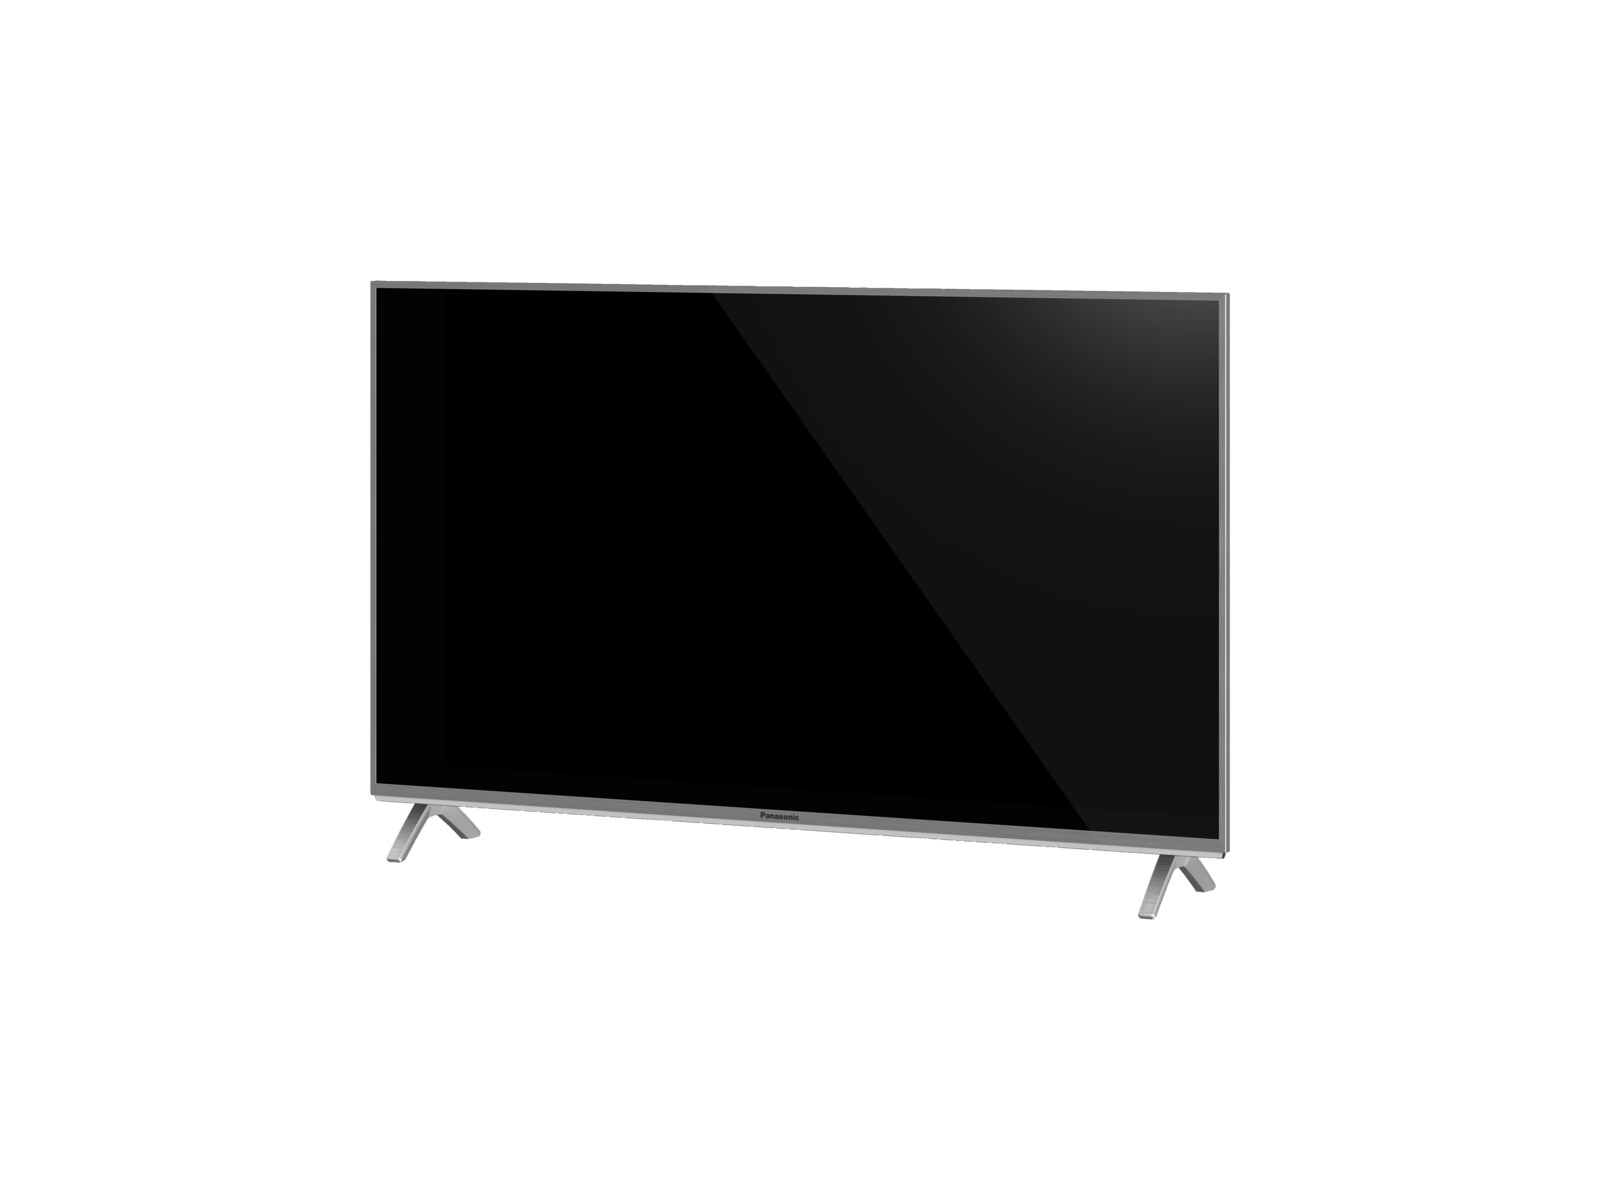 panasonic tx 55fxw724 led tv flat 55 zoll uhd 4k smart tv my home screen 3 ebay. Black Bedroom Furniture Sets. Home Design Ideas